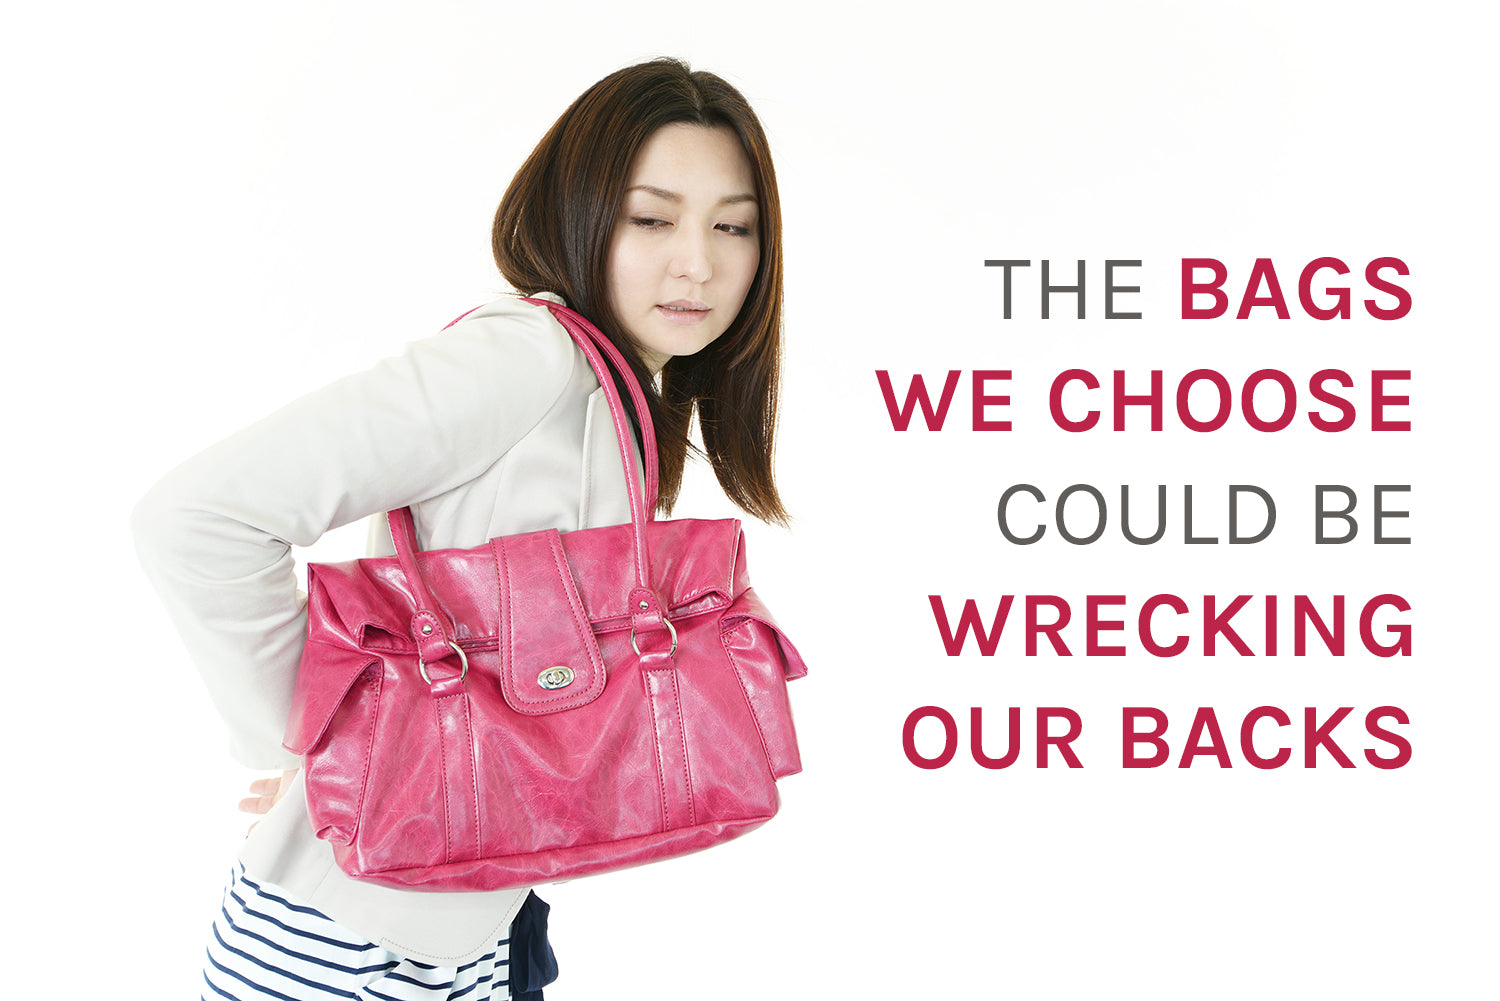 The bags we choose could be causing back pain